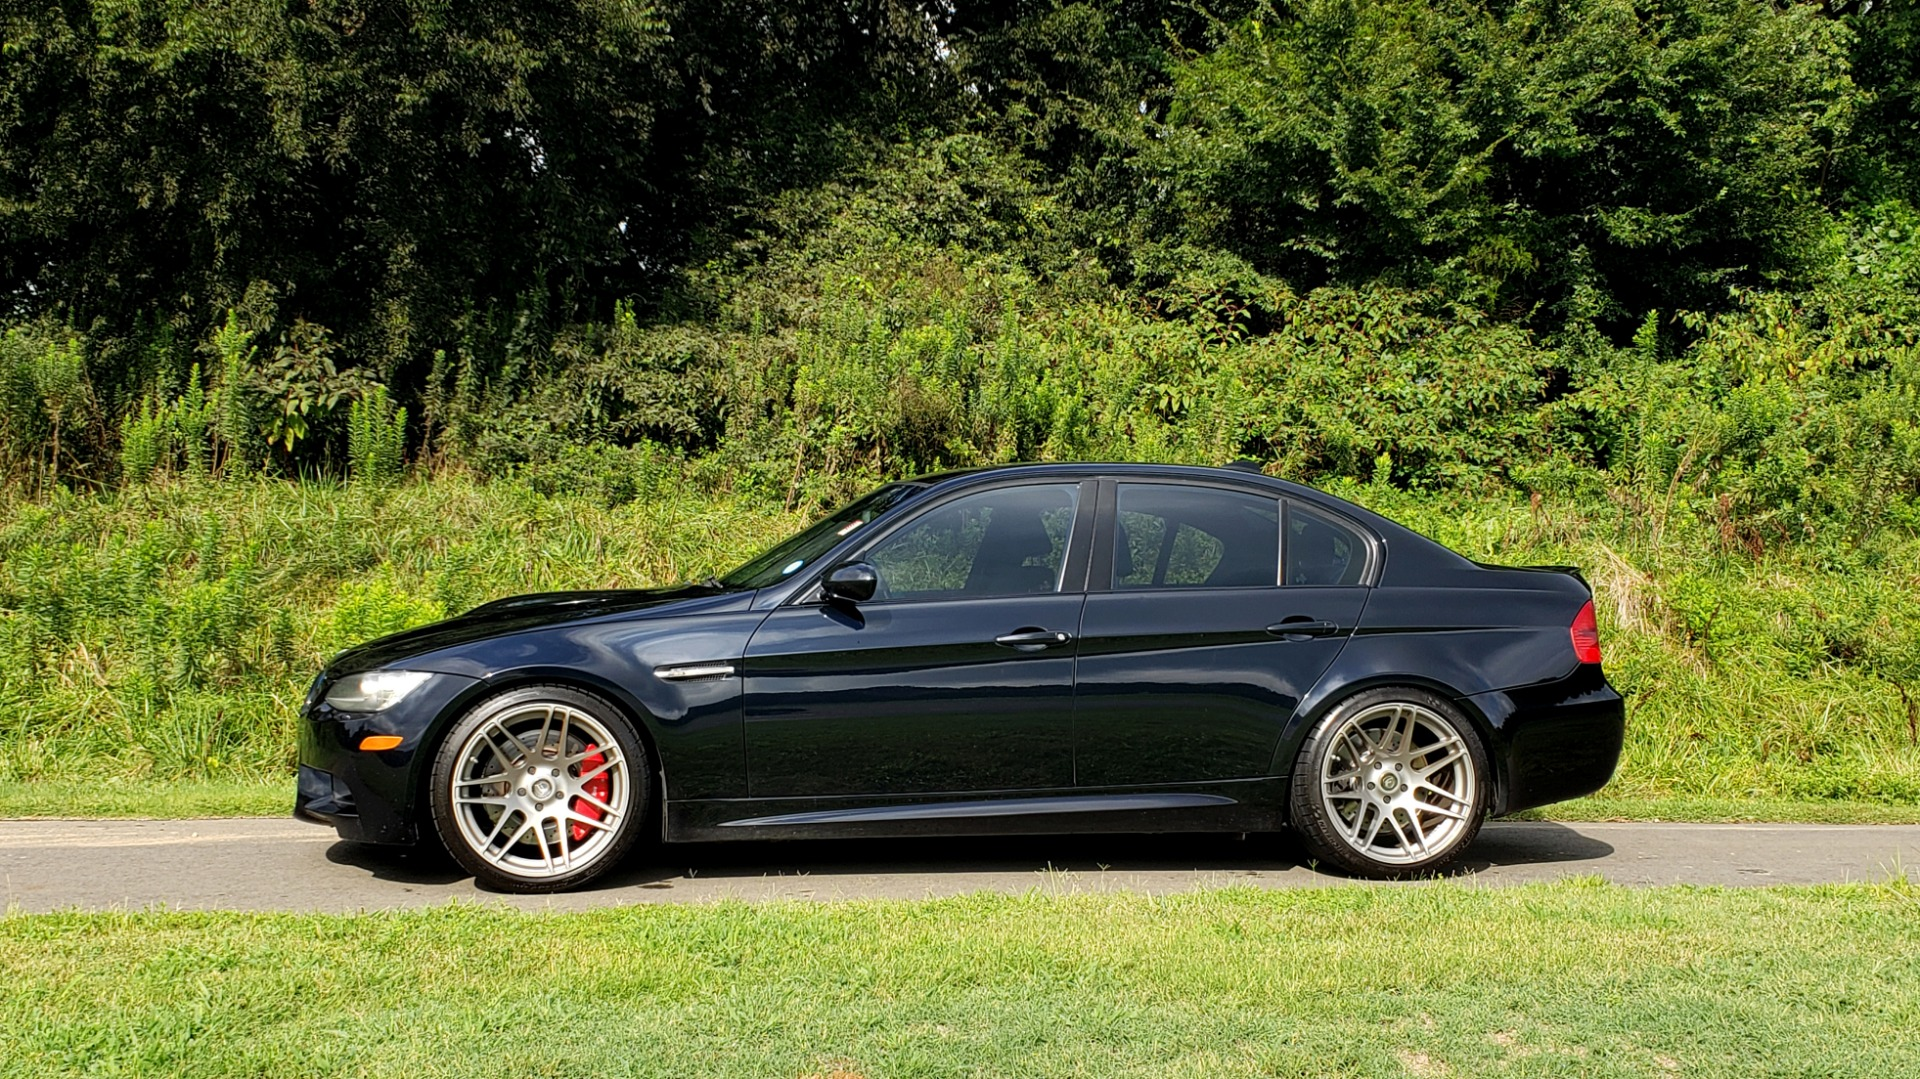 Used 2008 BMW 3 SERIES M3 PREMIUM / TECH / PDC / SUNROOF / 4.0L V8 / 6-SPD MANUAL for sale Sold at Formula Imports in Charlotte NC 28227 5